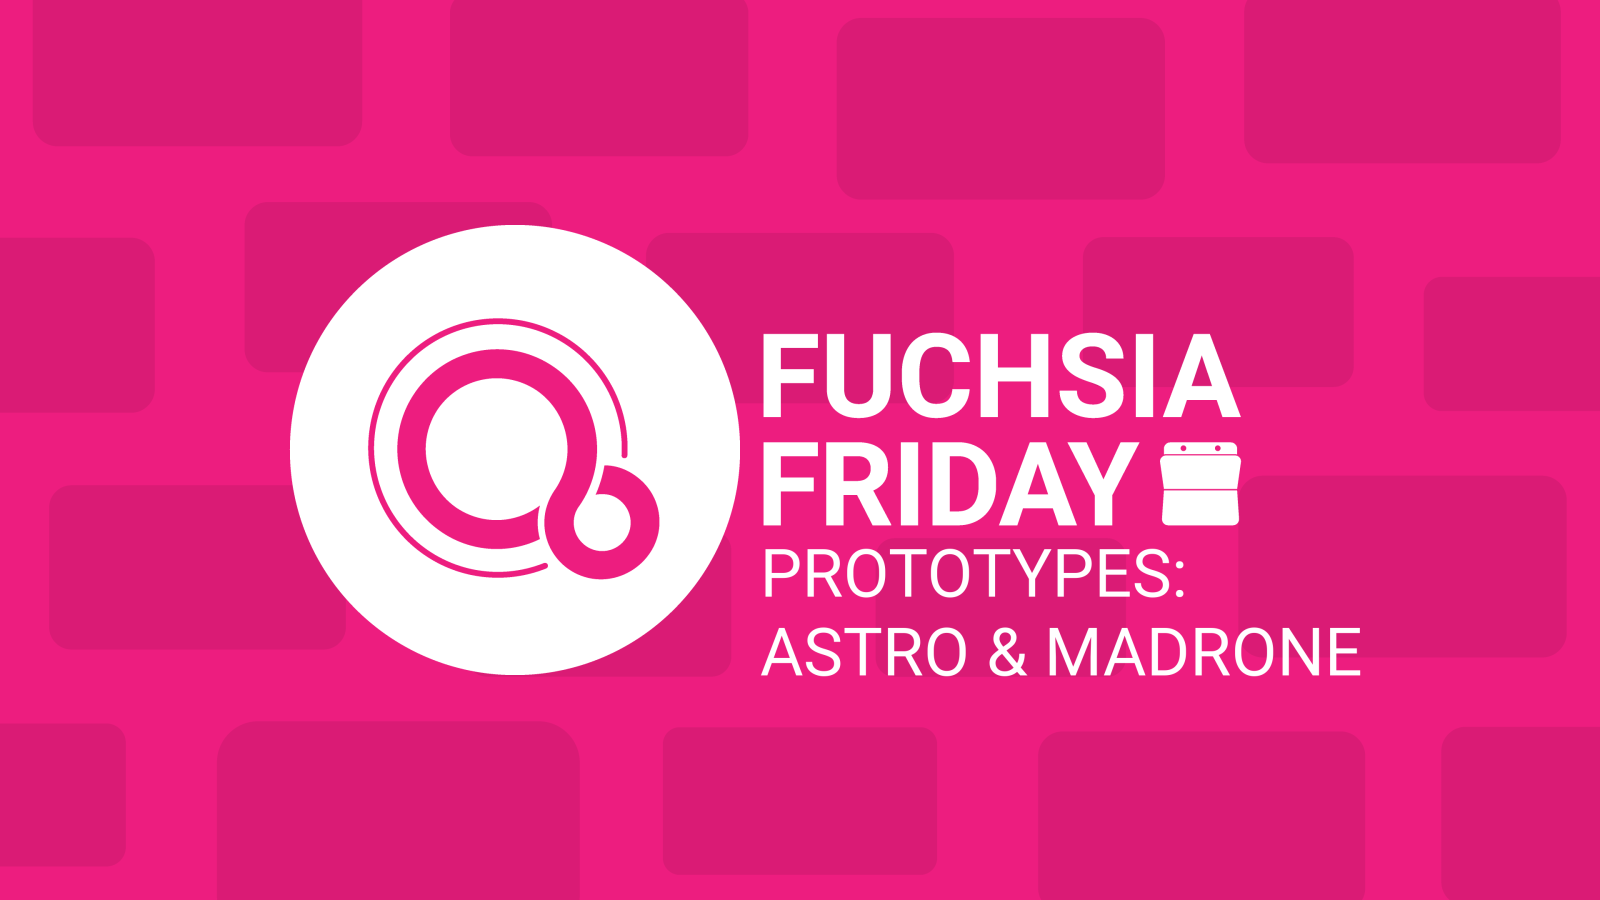 Fuchsia Friday: Updates on Fuchsia device prototypes — 'Astro,' 'Madrone,' and more